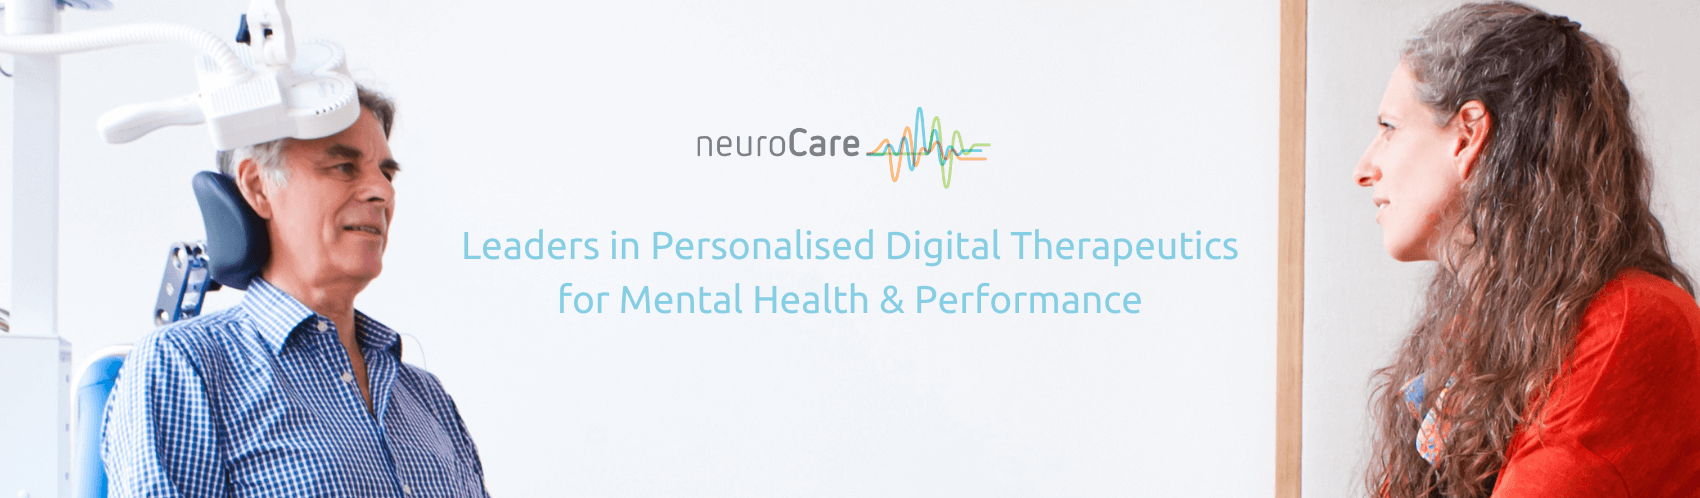 Leaders in Personalised Digital Therapeutics for Mental Health & Performance